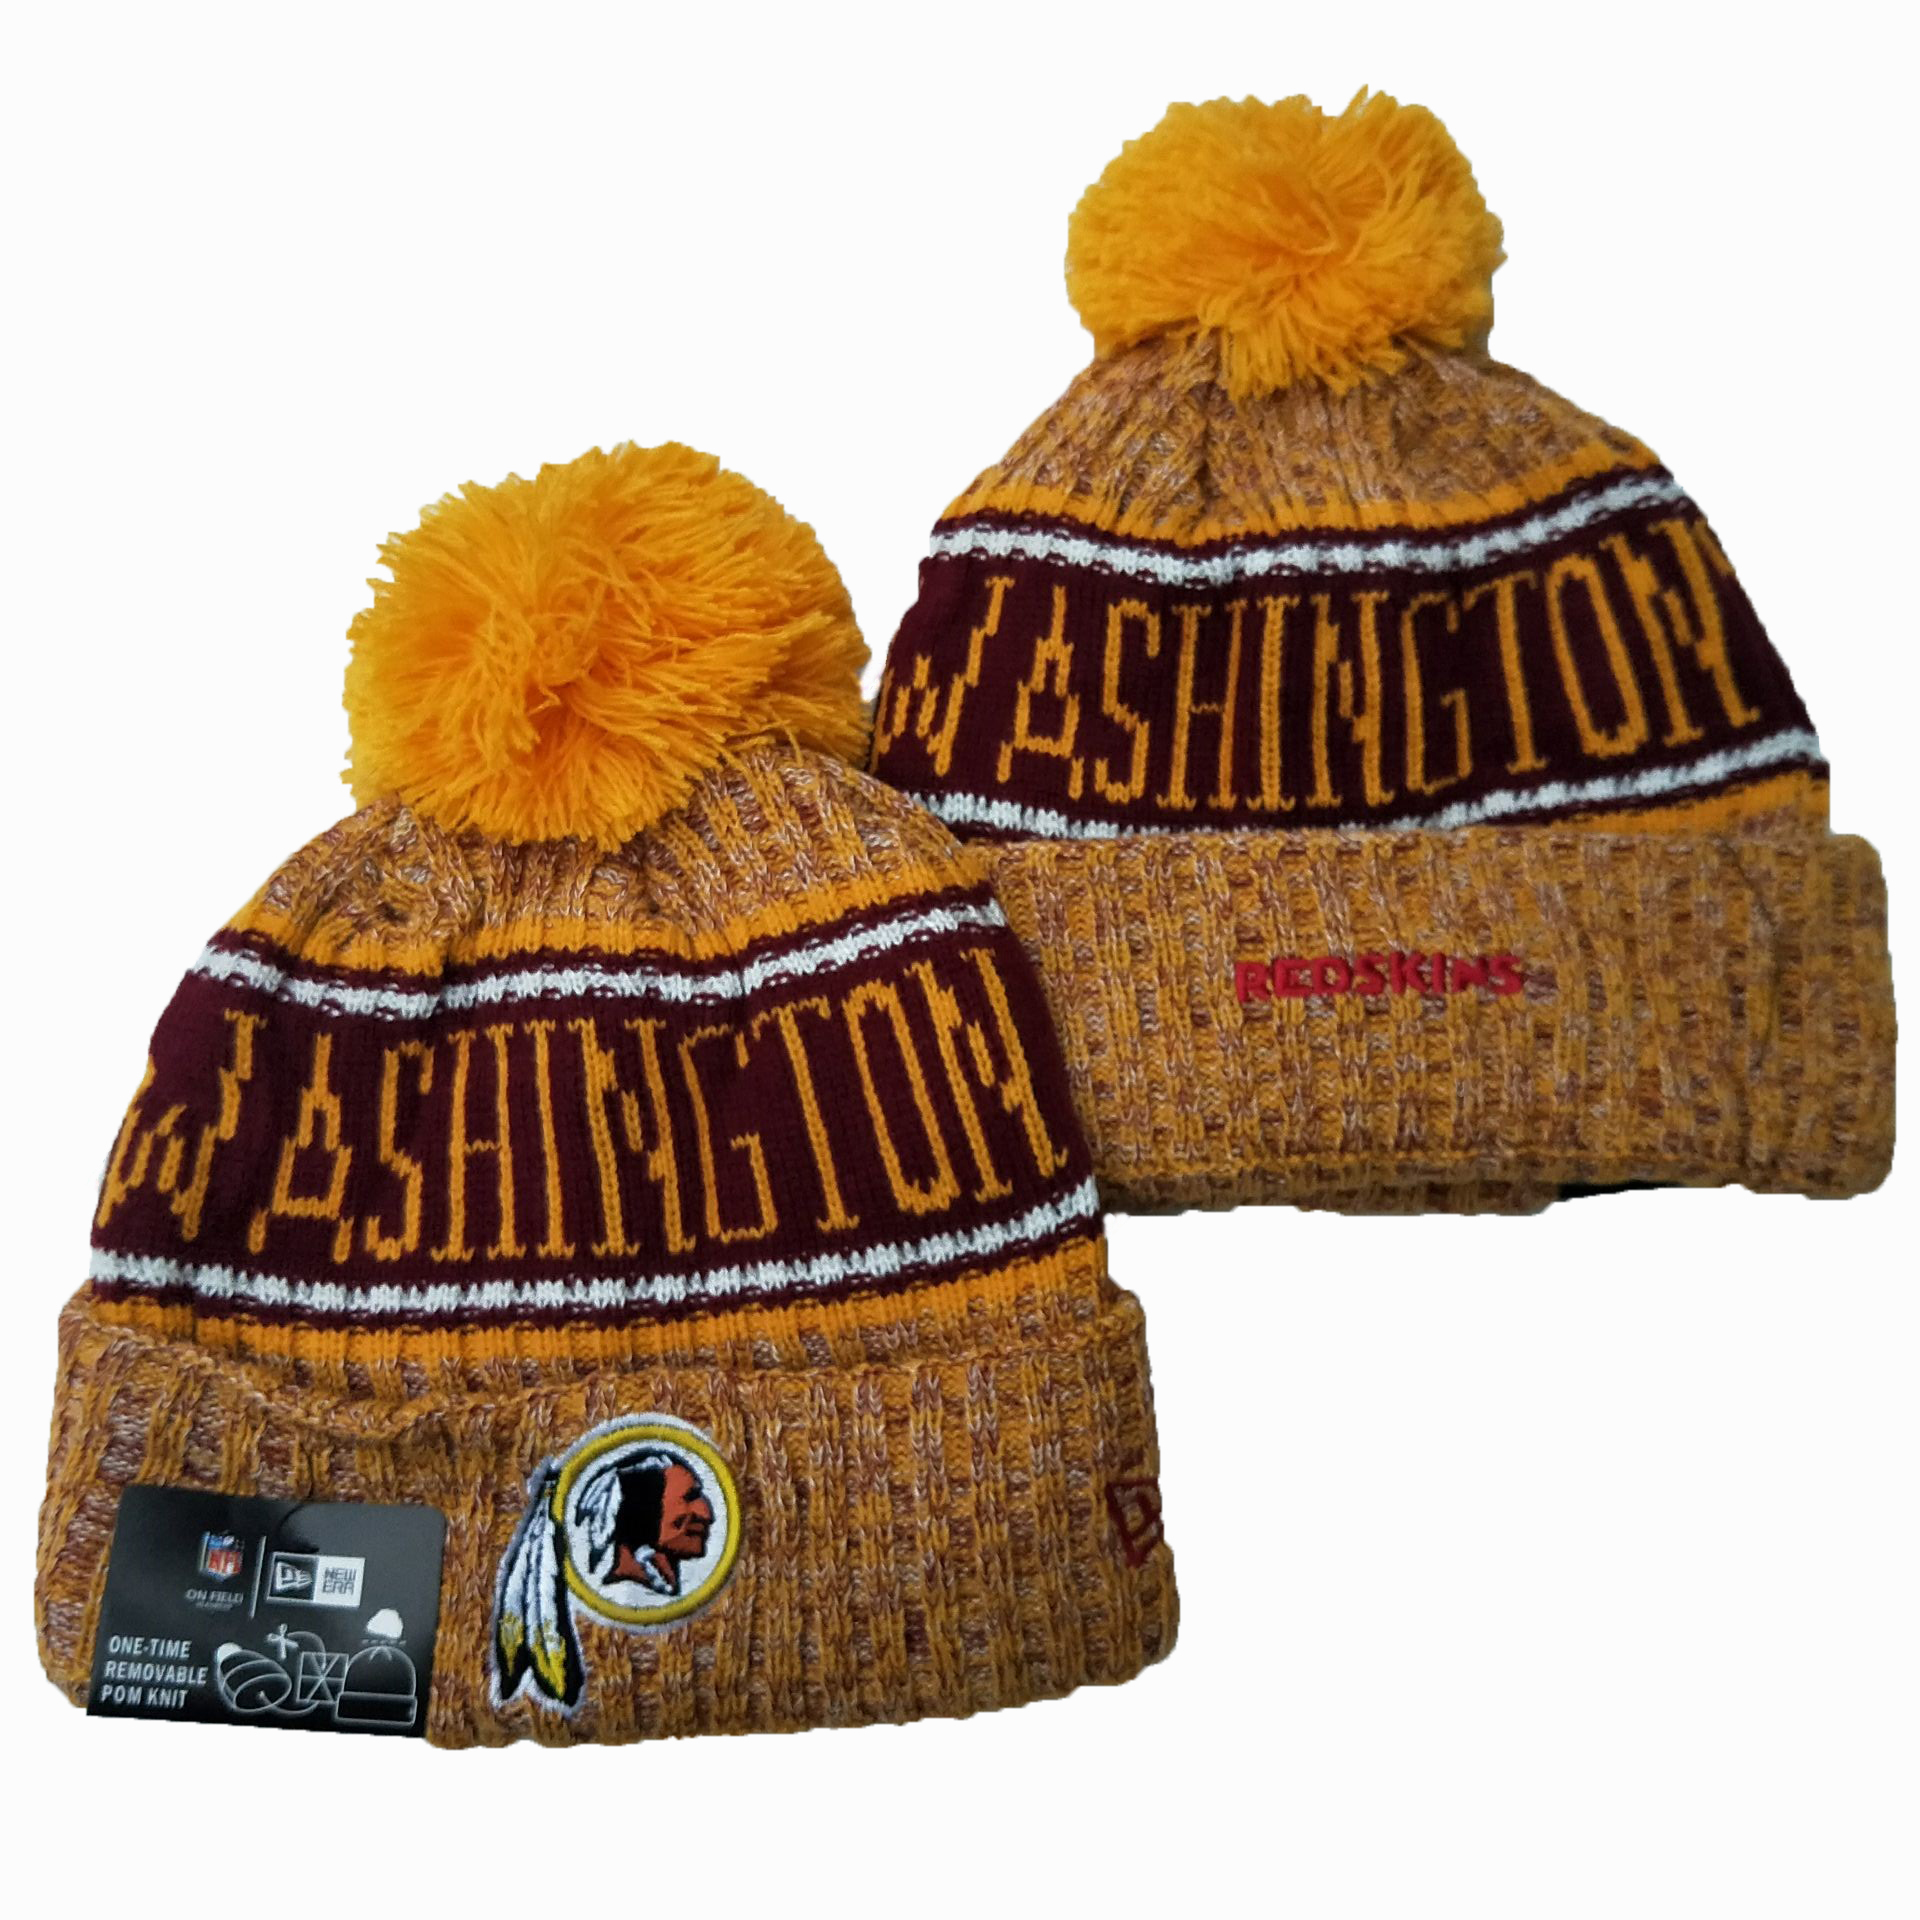 Redskins Team Logo Yellow Pom Knit Hat YD